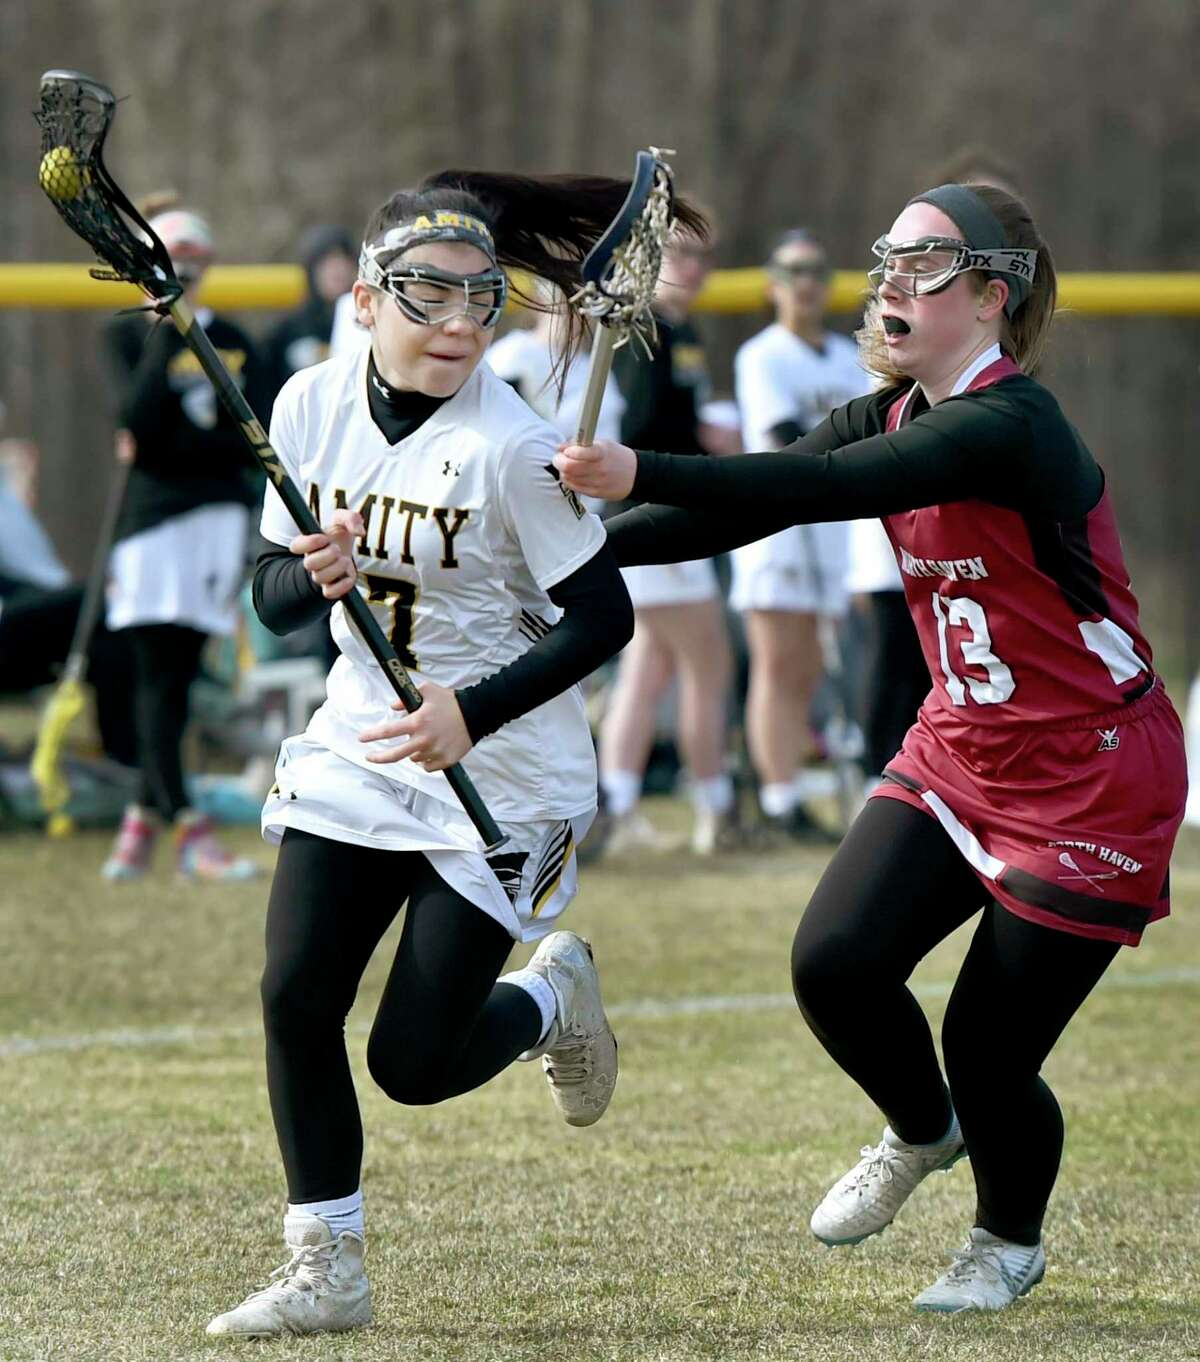 Payton Papa of Amity, left, runs down field against Quinn Kirby of North Haven on during the first half of girls lacrosse at Amity in Woodbridge on April 2, 2019.